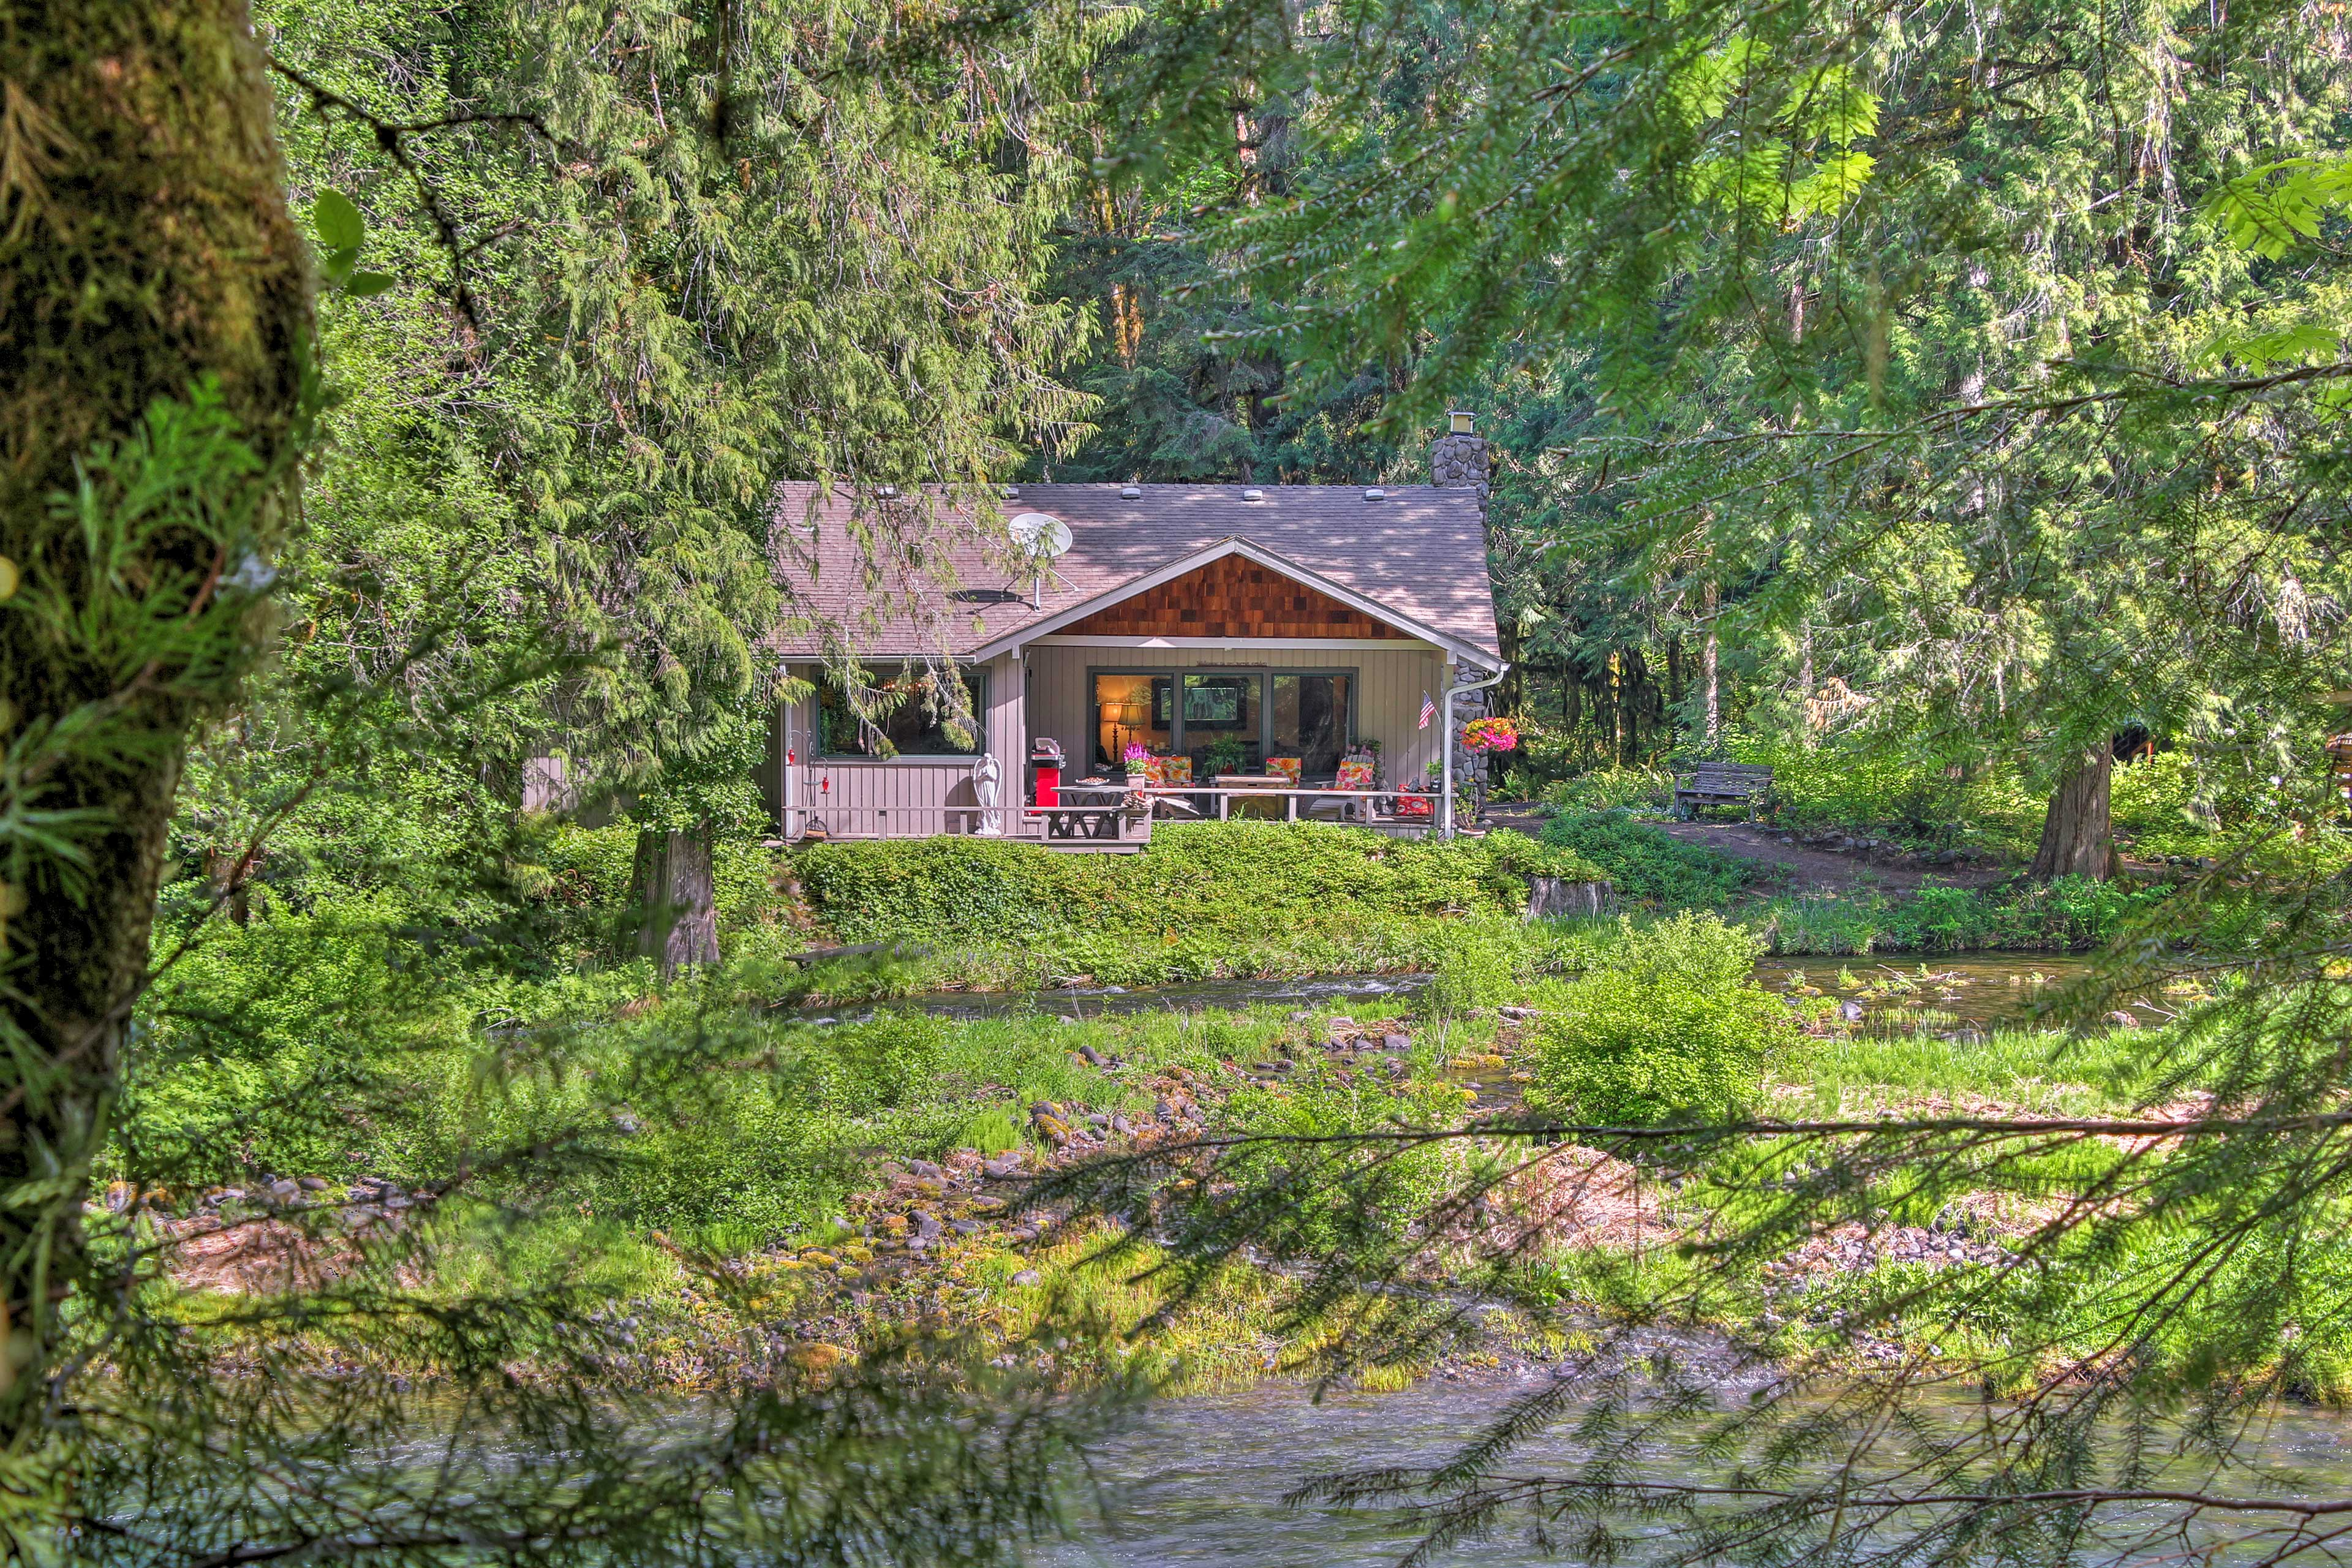 Hideaway for a romantic weekend in this adorable cabin.